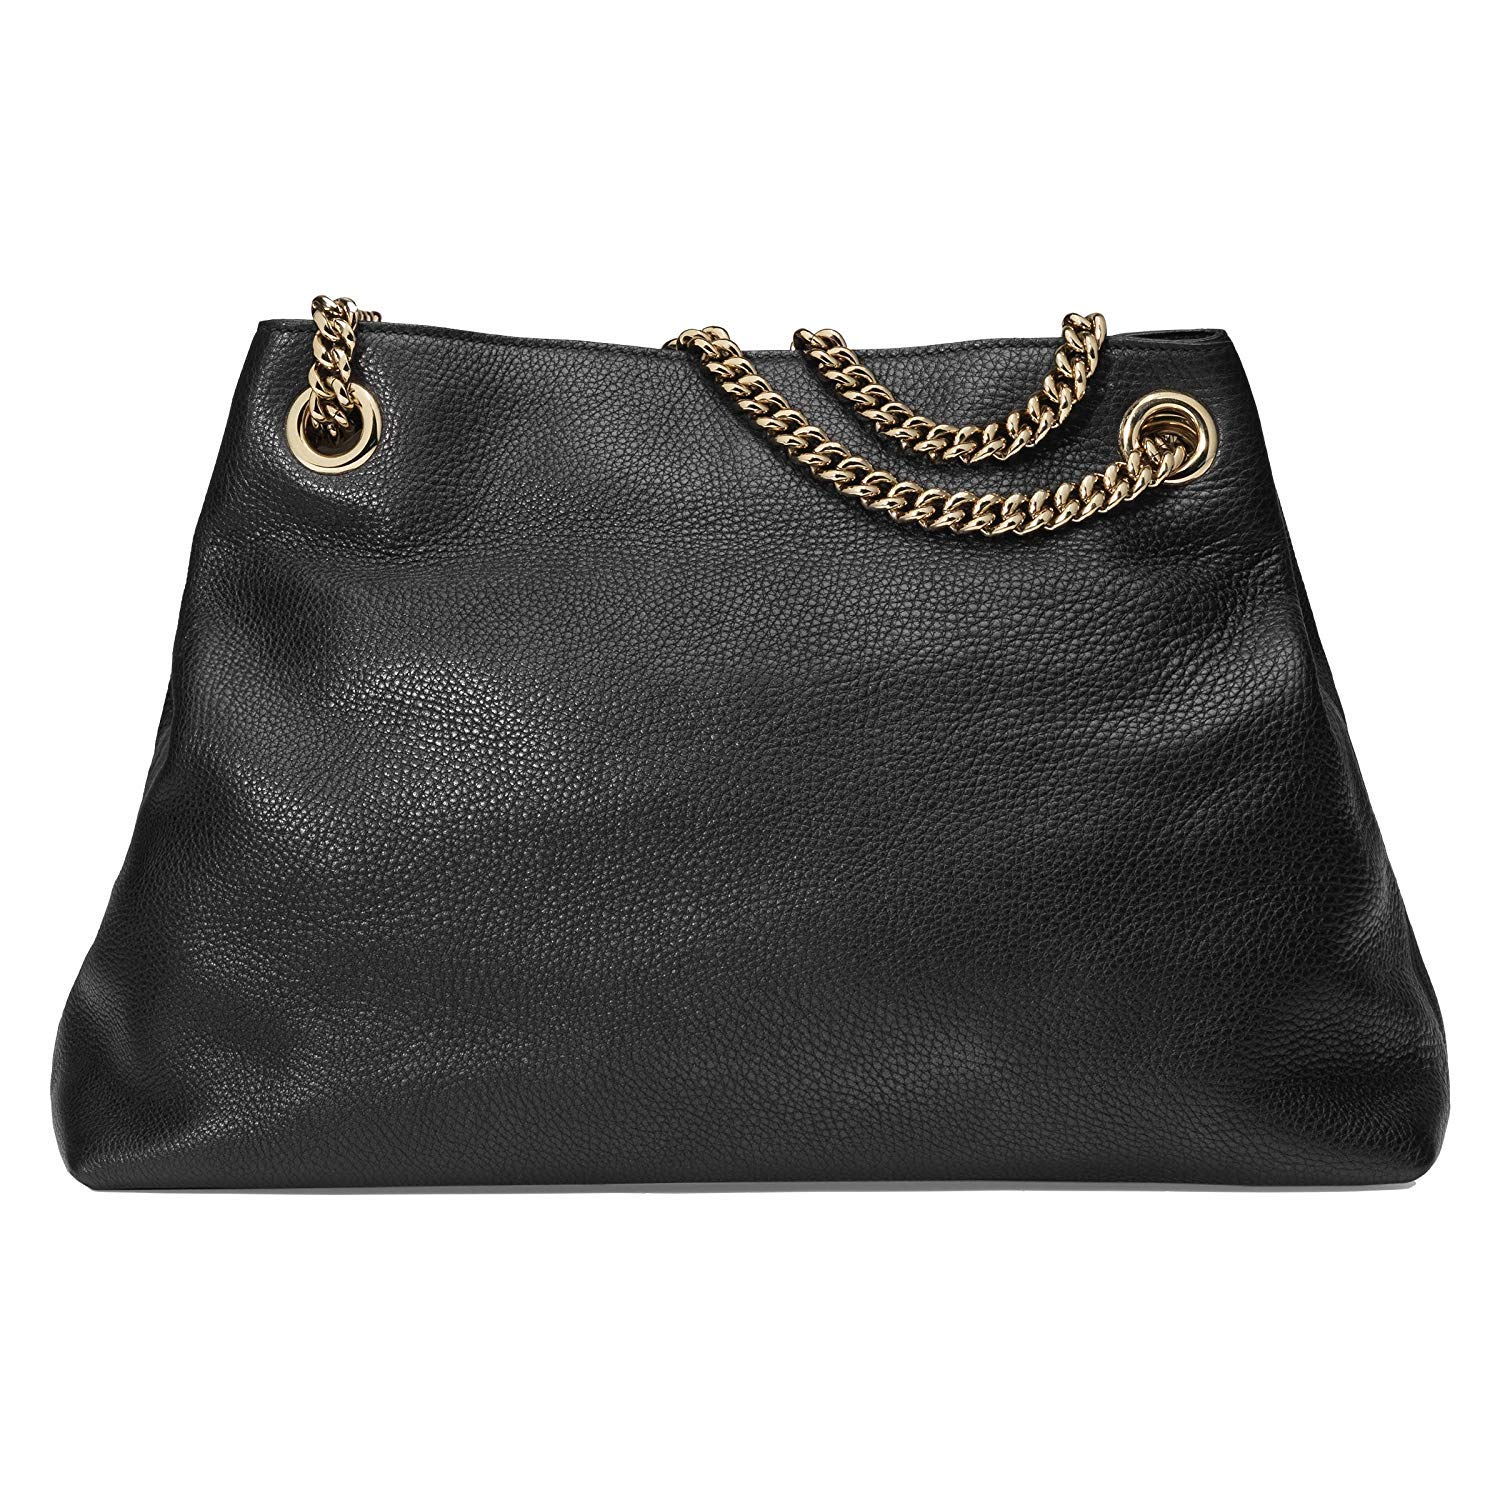 2ea5eabb2 Amazon.com: Gucci Soho Medium Black Double Leather Chain Shoulder Bag Tote  Black Gold New: Shoes